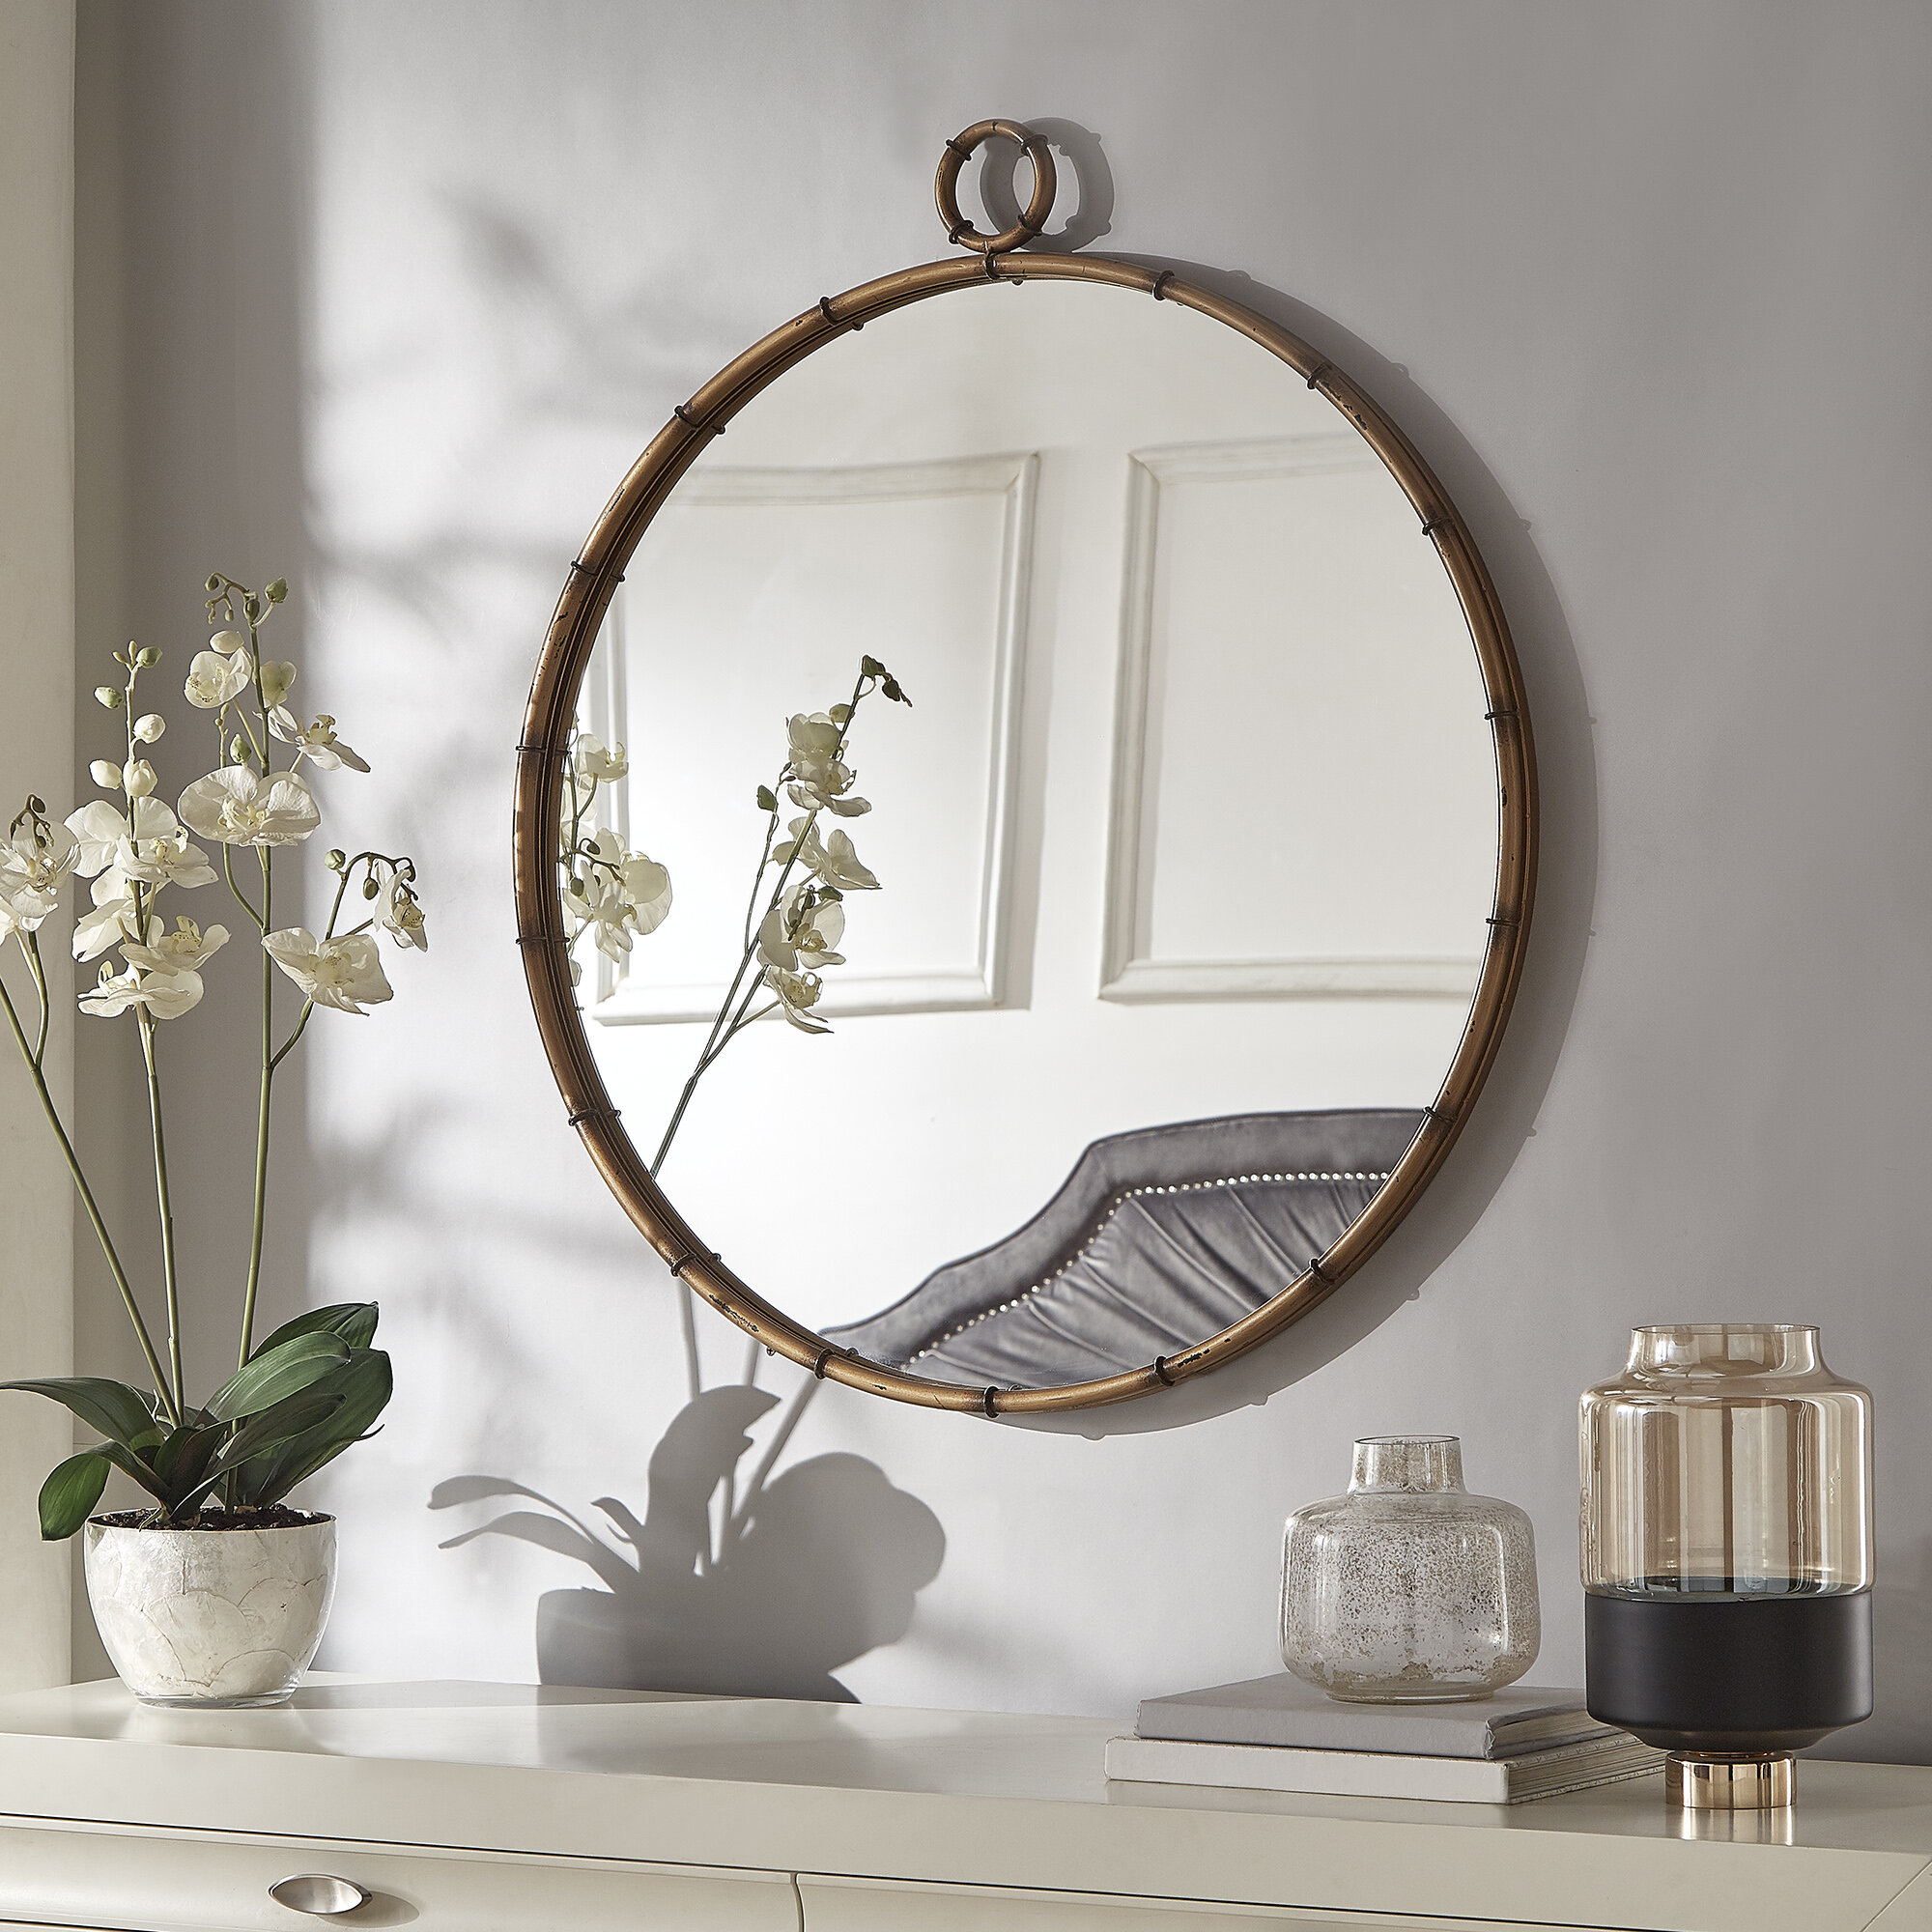 Zadie Modern And Contemporary Accent Mirror Regarding Loftis Modern & Contemporary Accent Wall Mirrors (View 11 of 20)